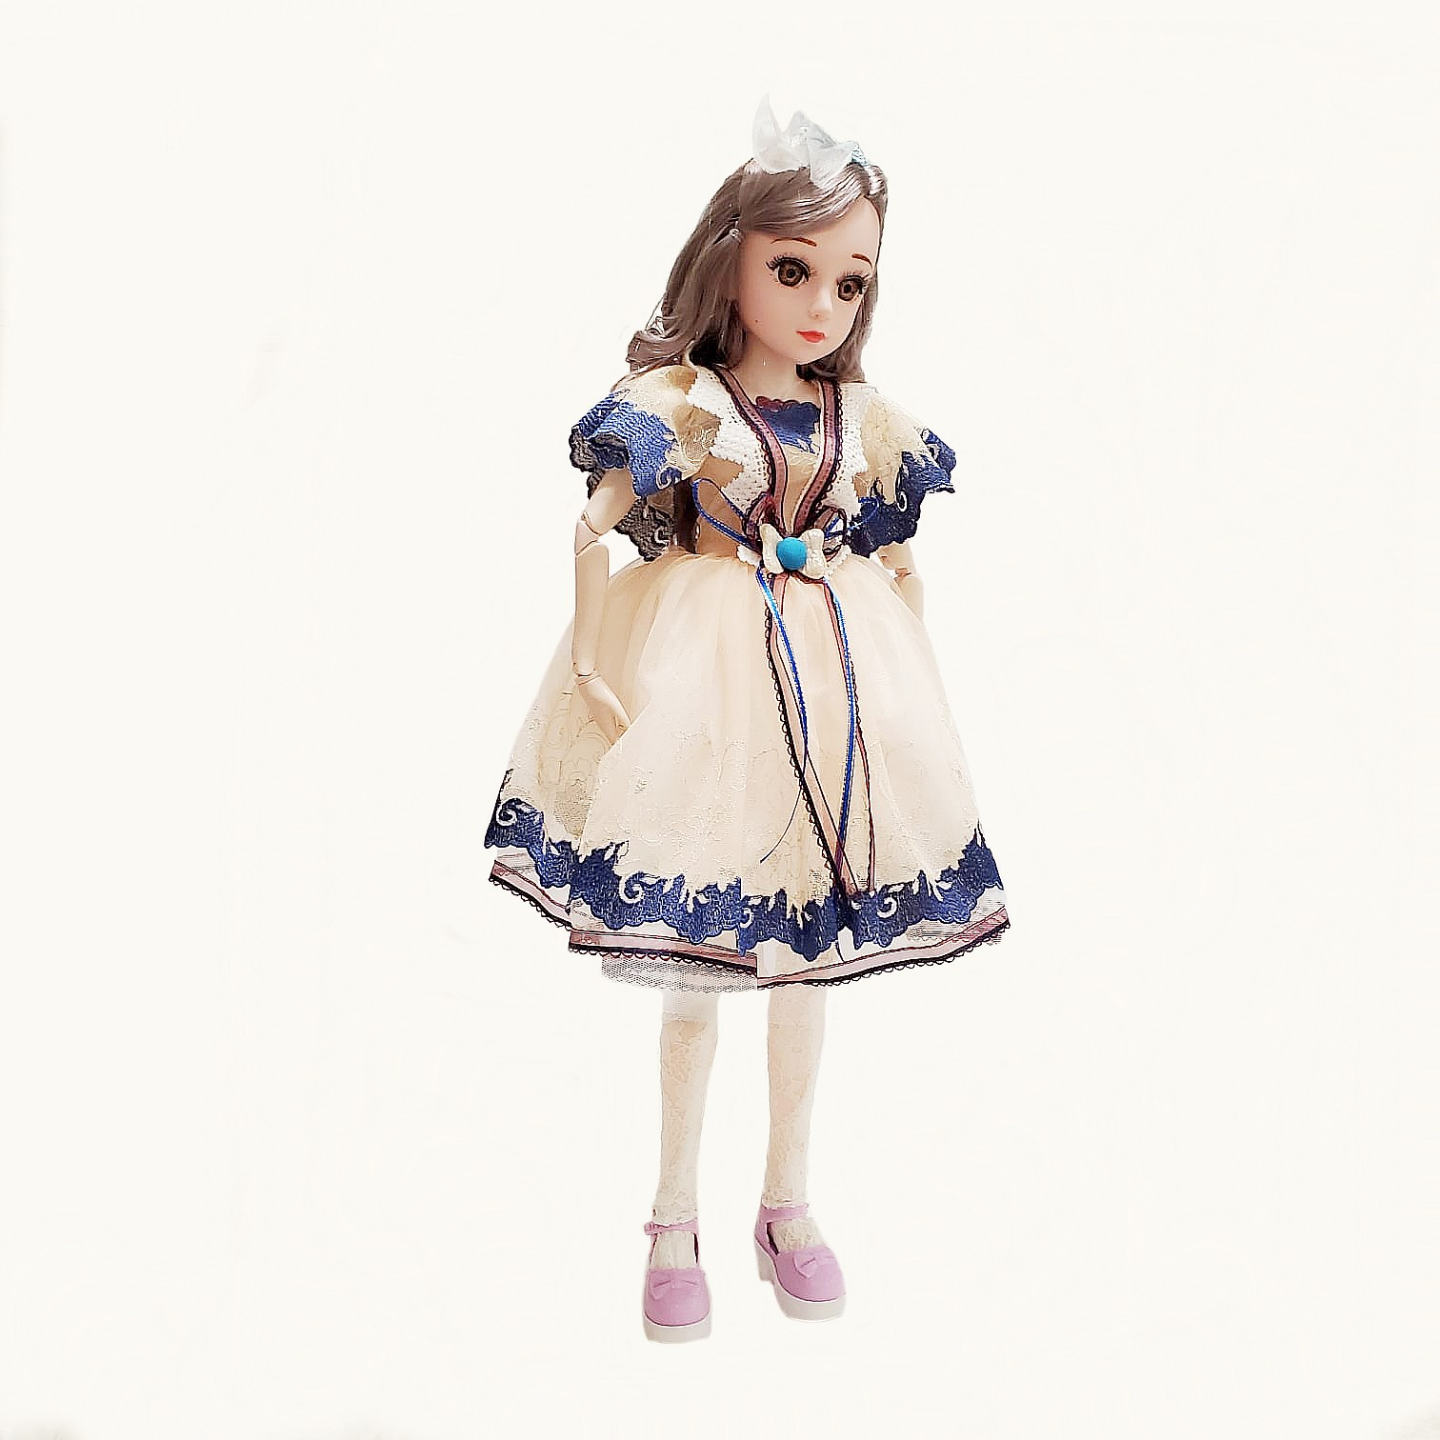 Doll girl toy birthday gift princess palace models ancient 60cm